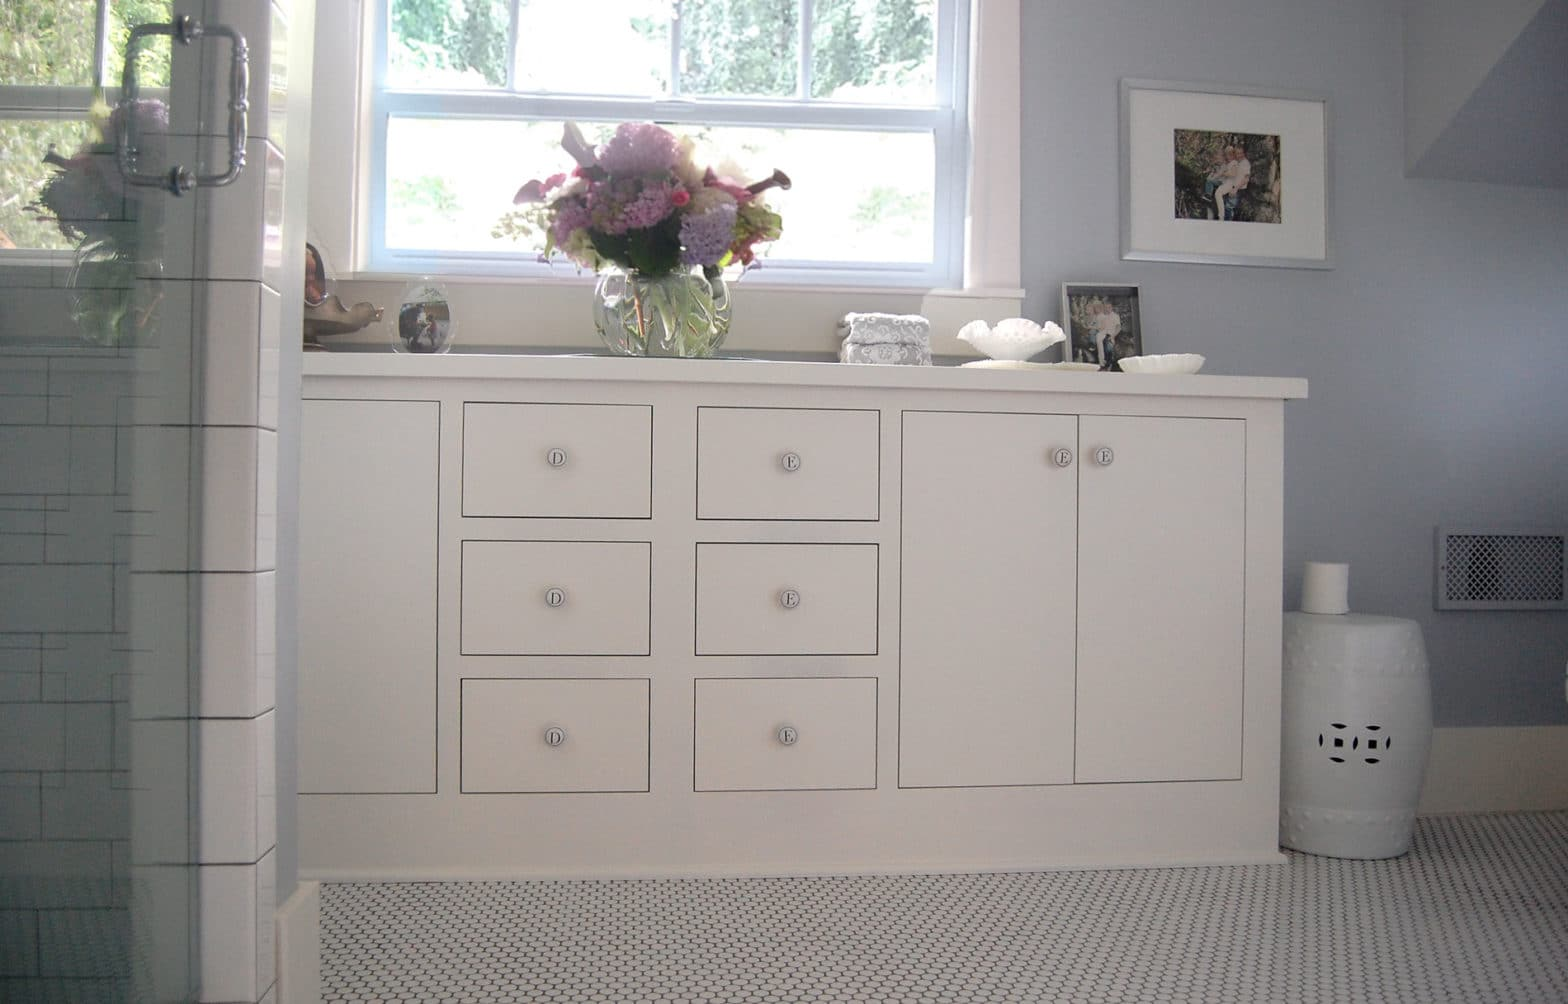 White Cabinets With Flowers In Bright Bathroom